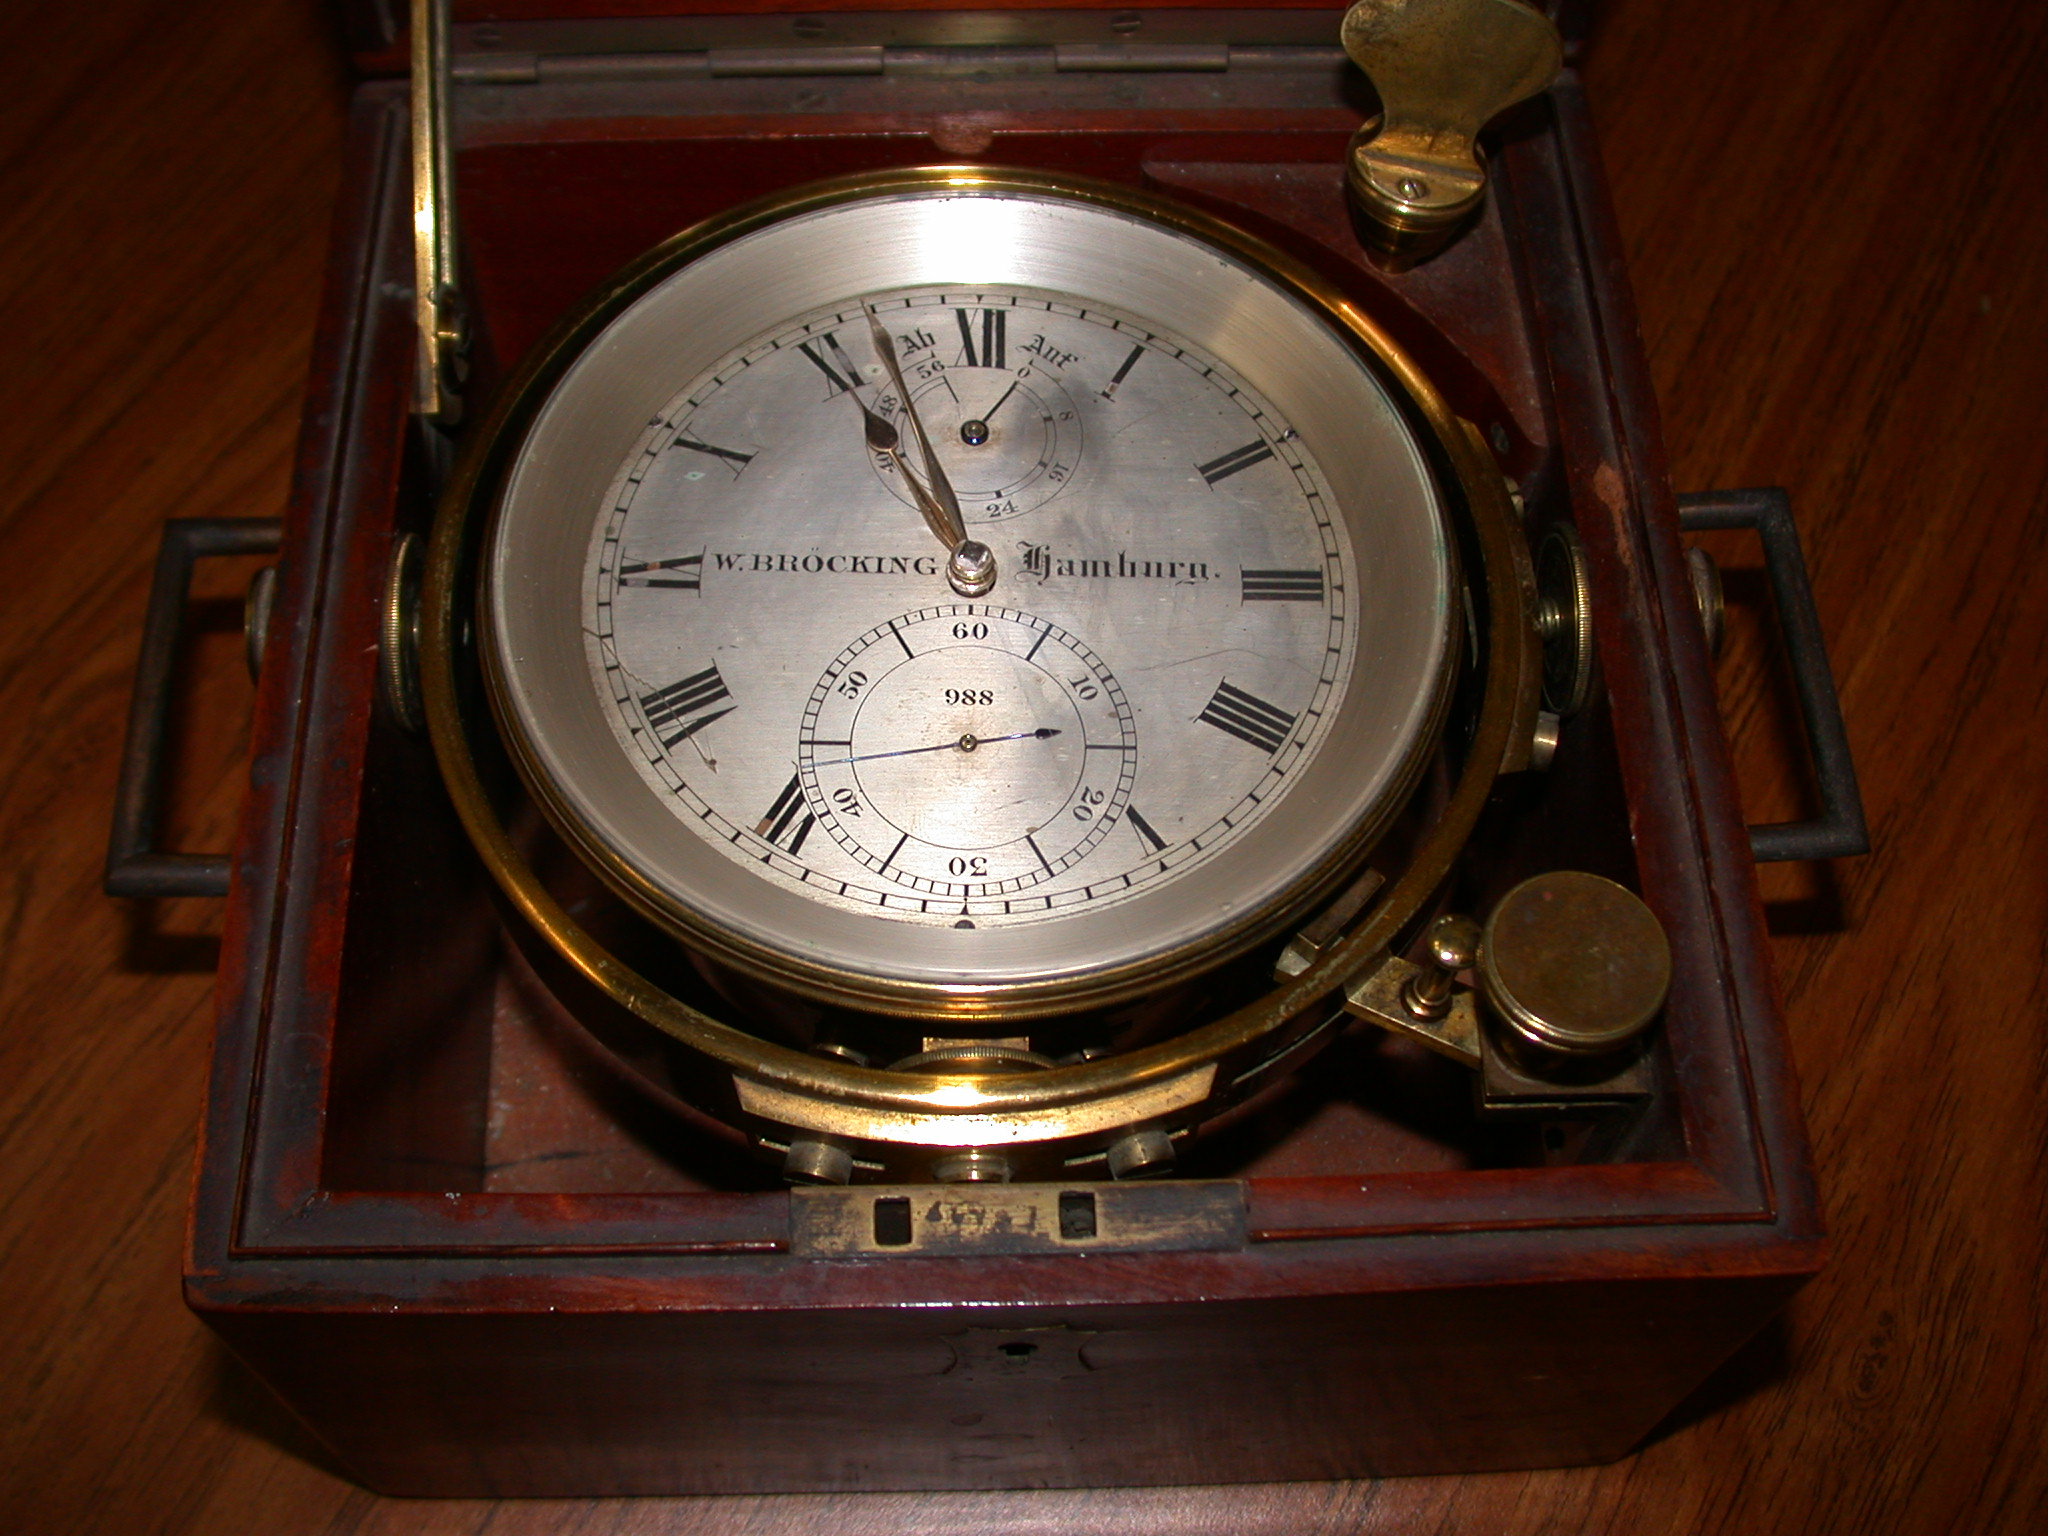 Brocking chronometer